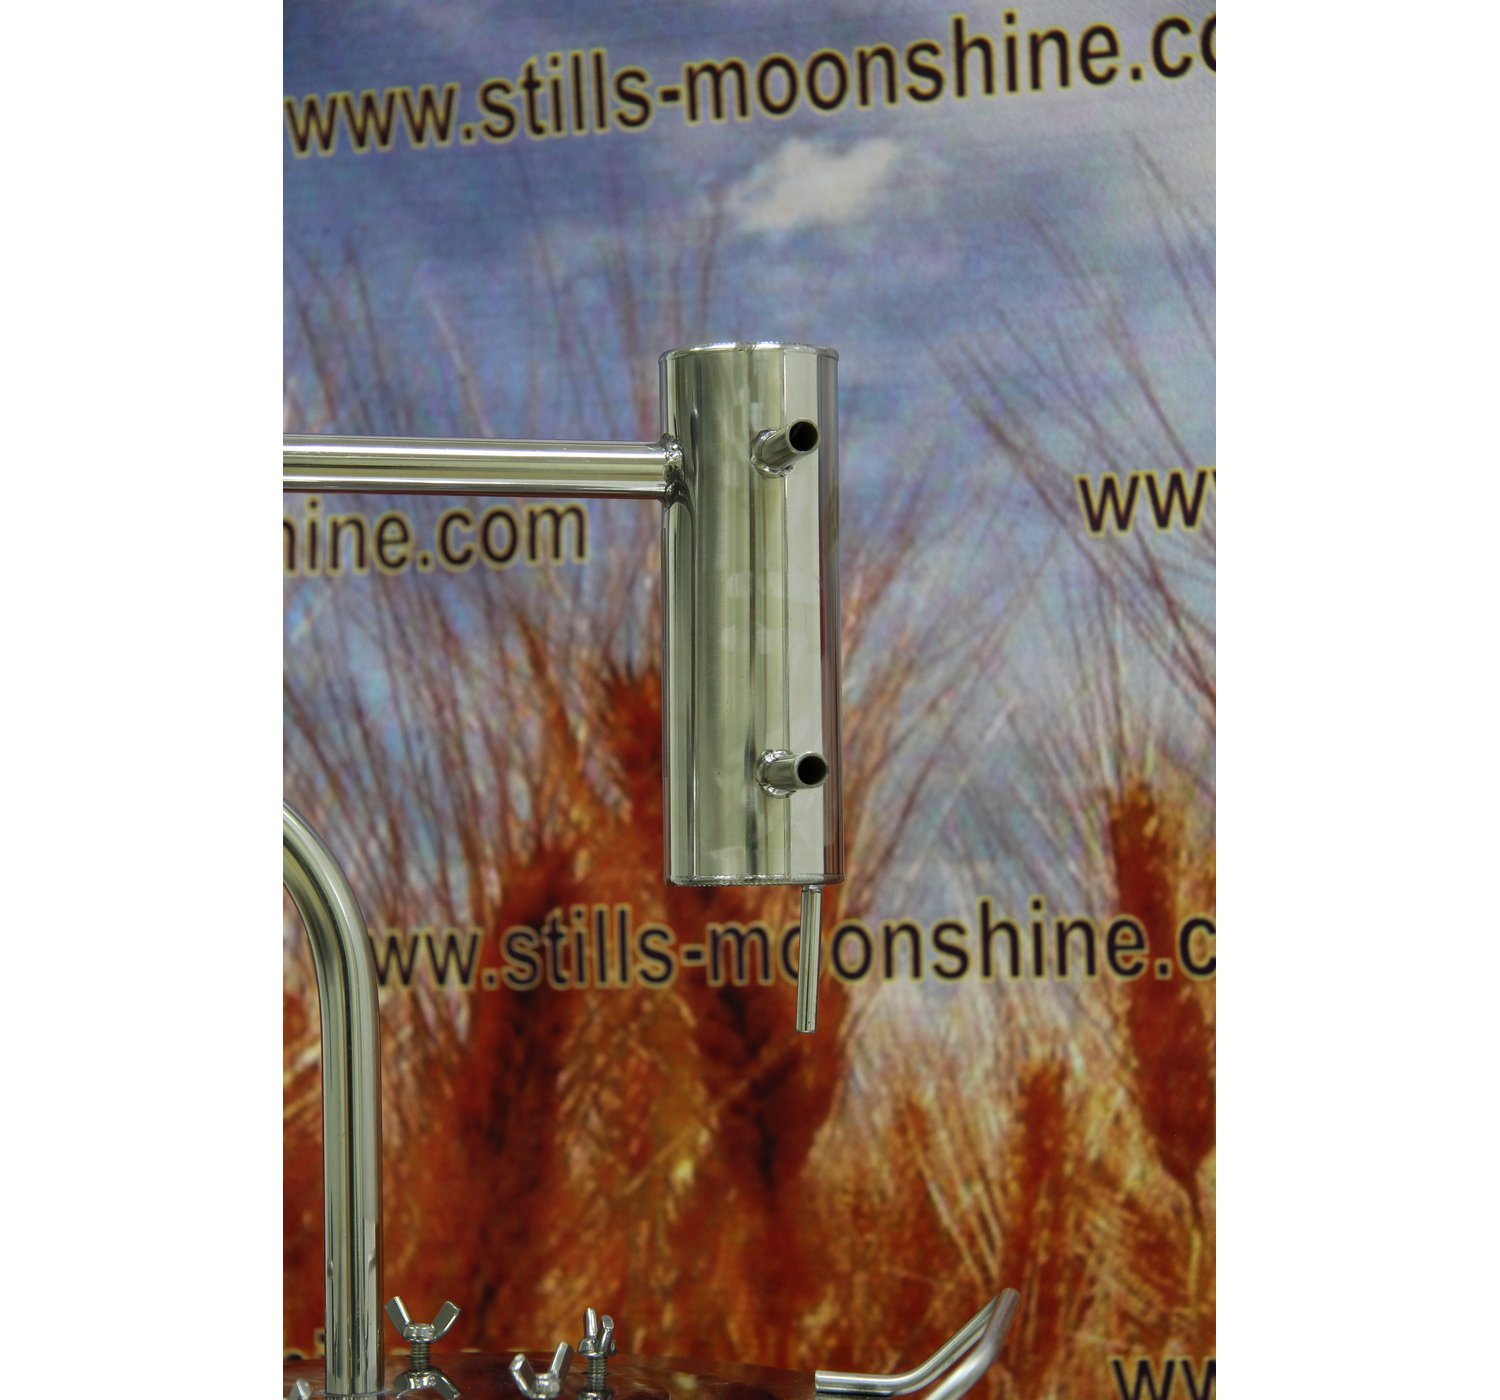 Moonshine distiller owner with fruits